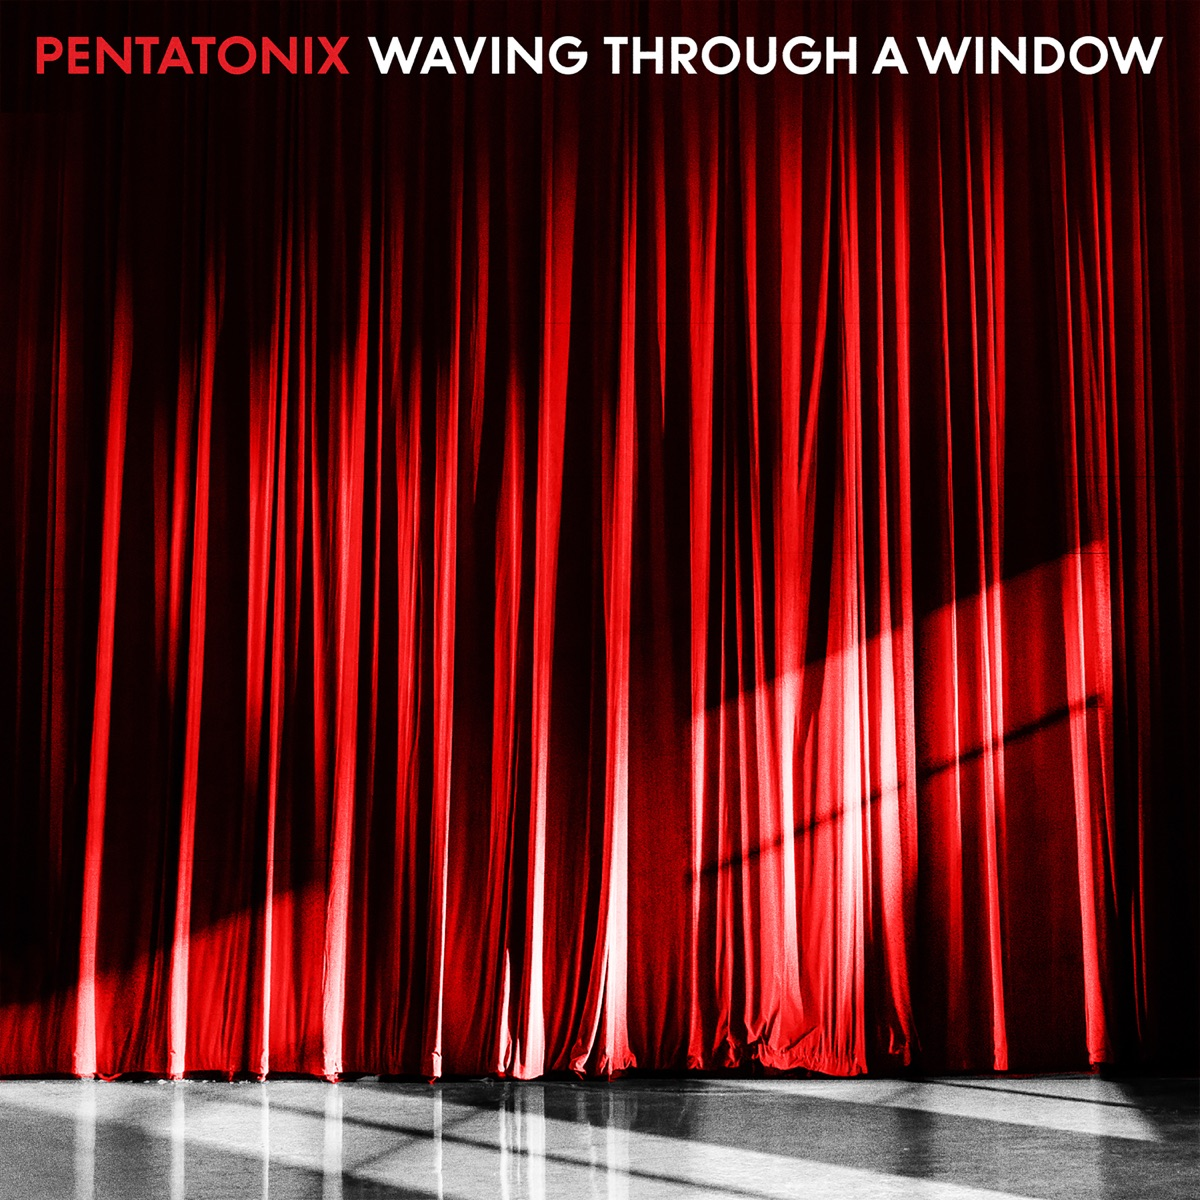 Pentatonix Christmas Deluxe.Waving Through A Window Single Album Cover By Pentatonix